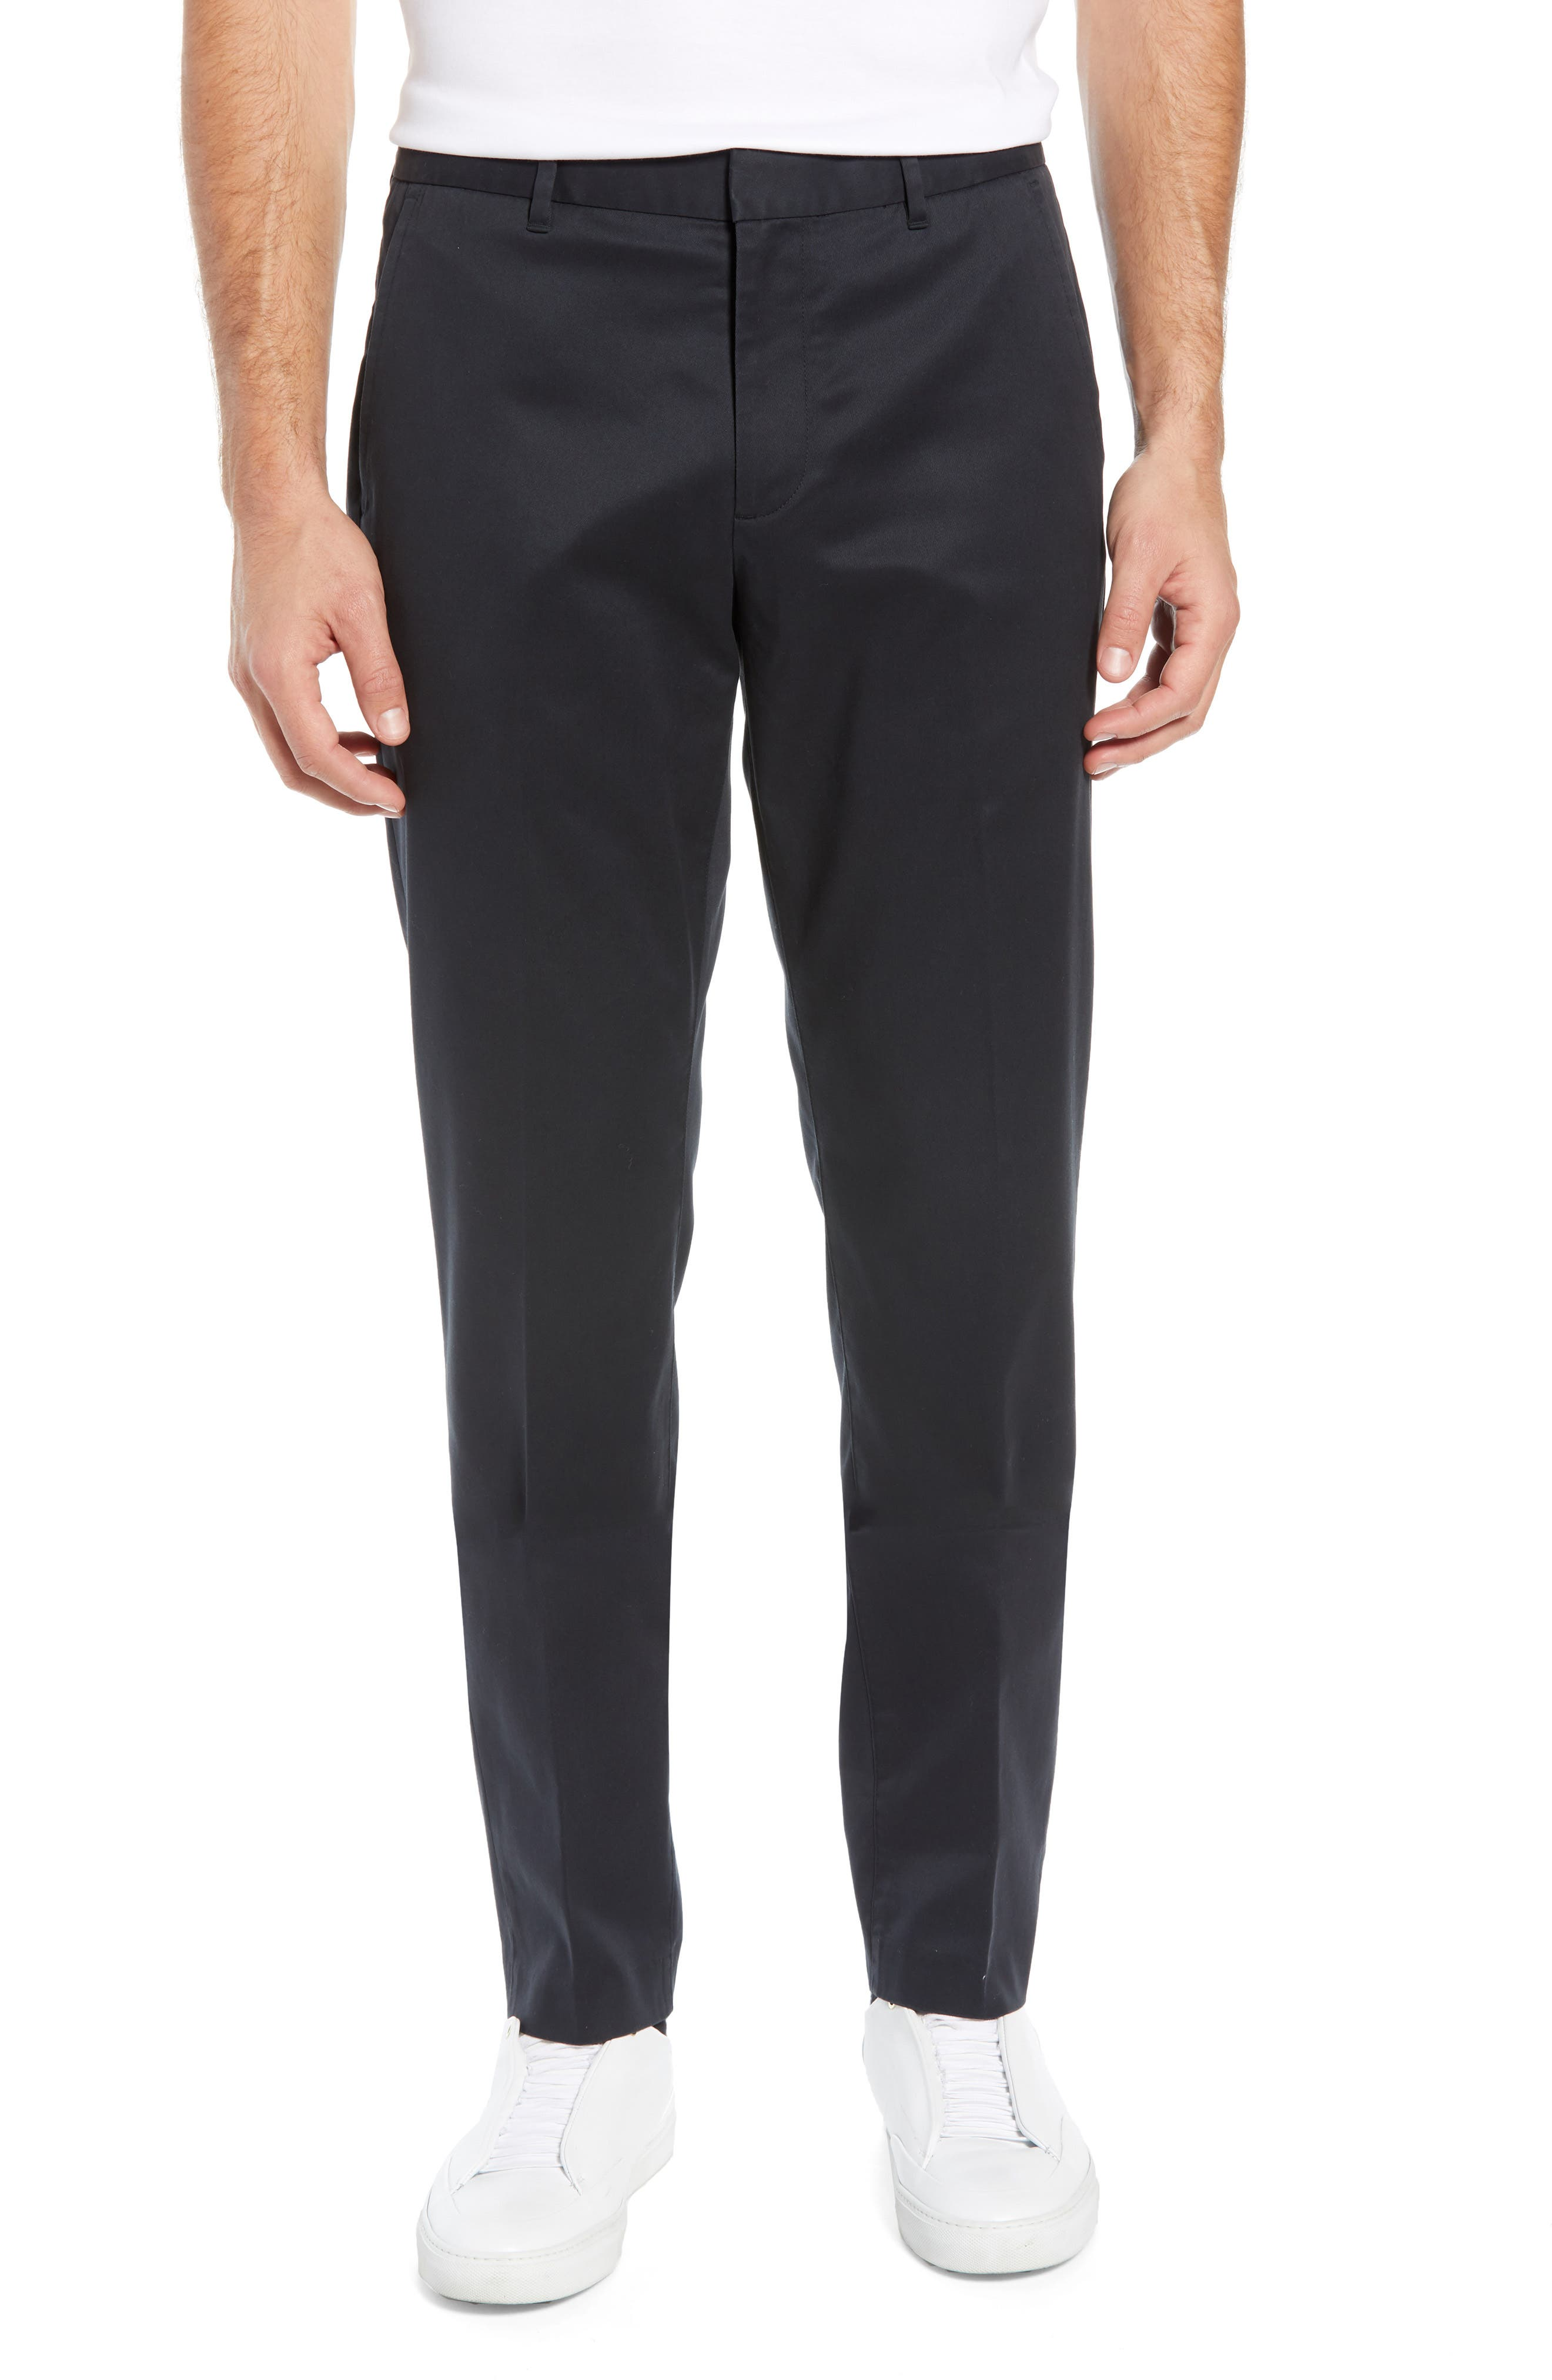 BONOBOS Weekday Warrior Athletic Fit Stretch Dress Pants, Main, color, TUESDAY BLACK